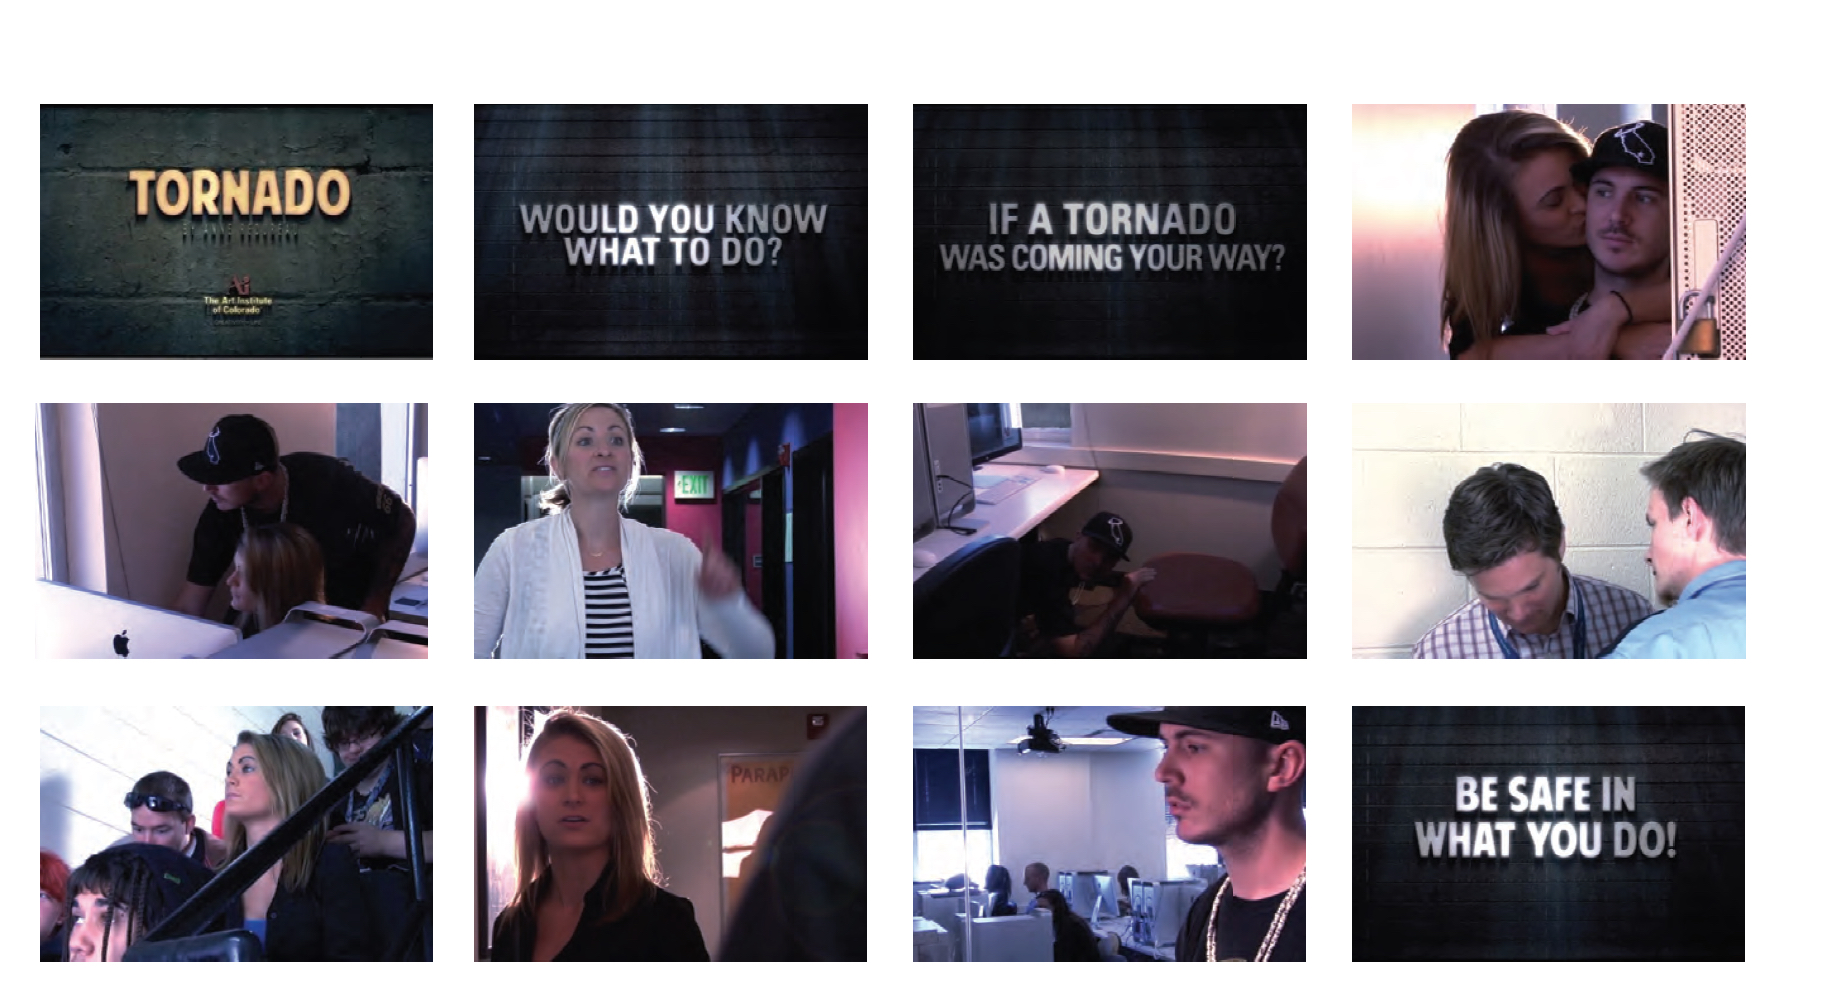 TORNADO is a 3-act sequence video that aims to increase emergency procedures awareness among viewers with a touch of drama and humor.